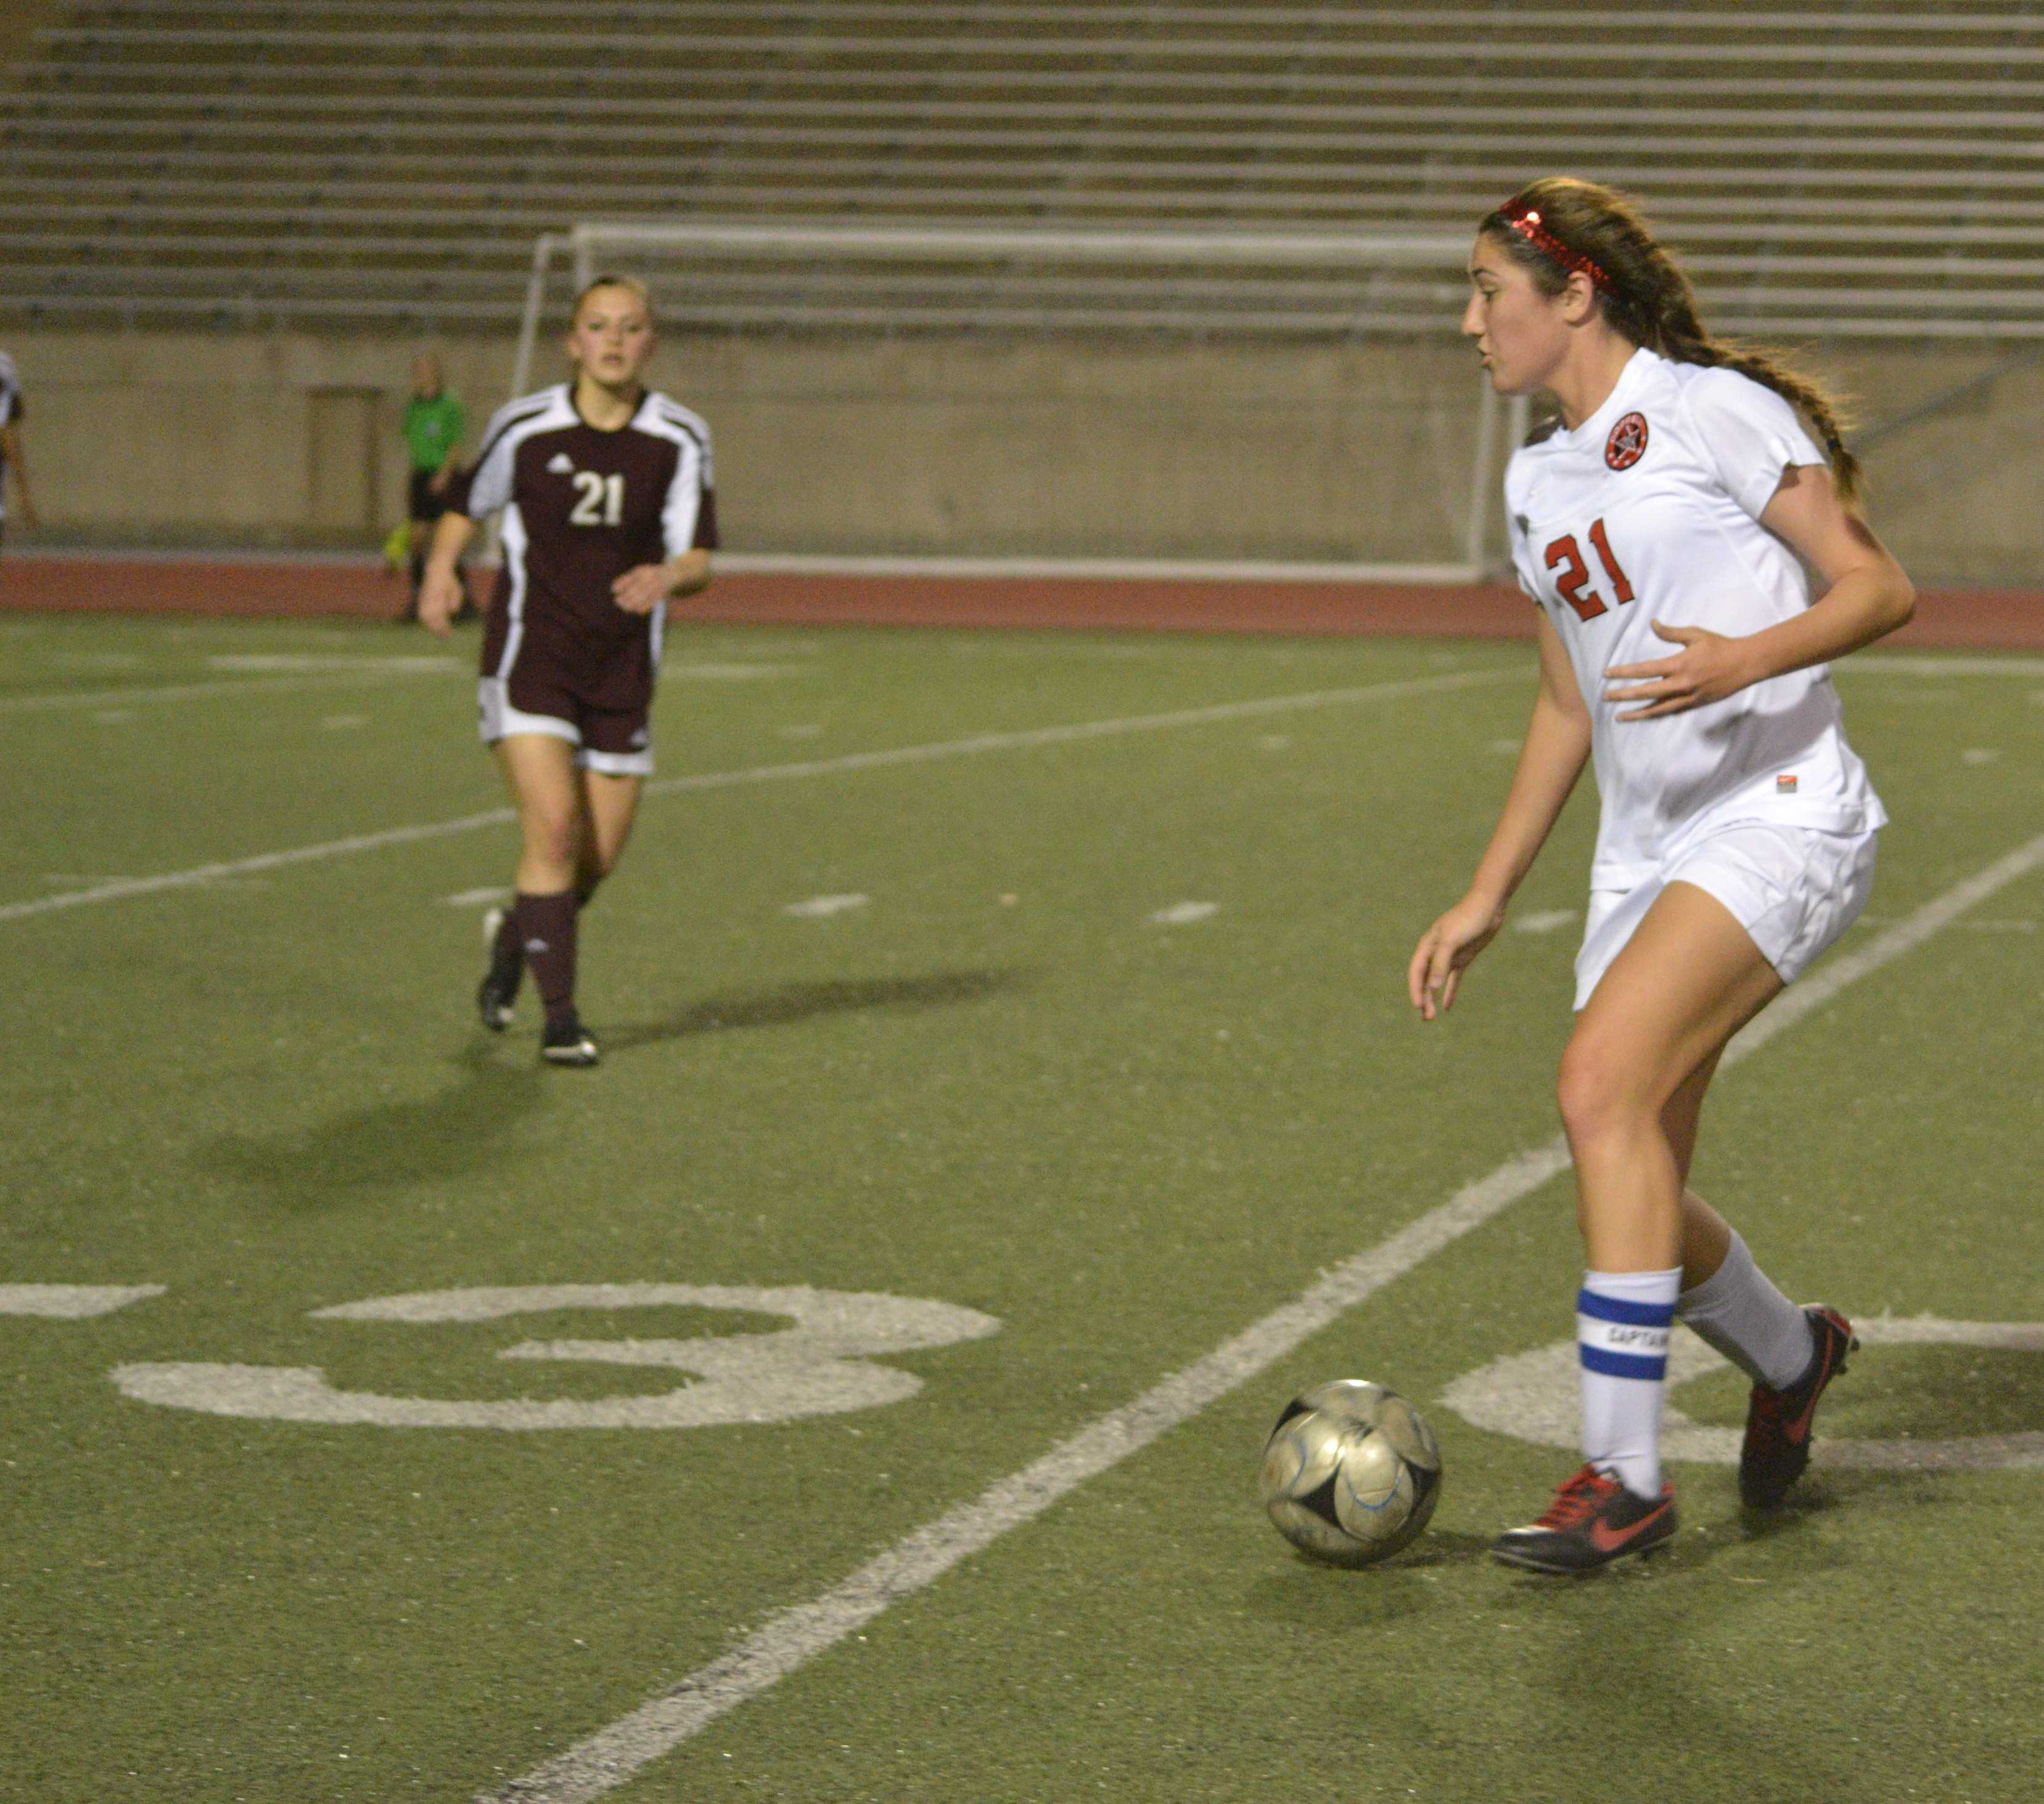 Junior forward, Sarah King, carefully drives the ball down field, before taking a shot on goal.